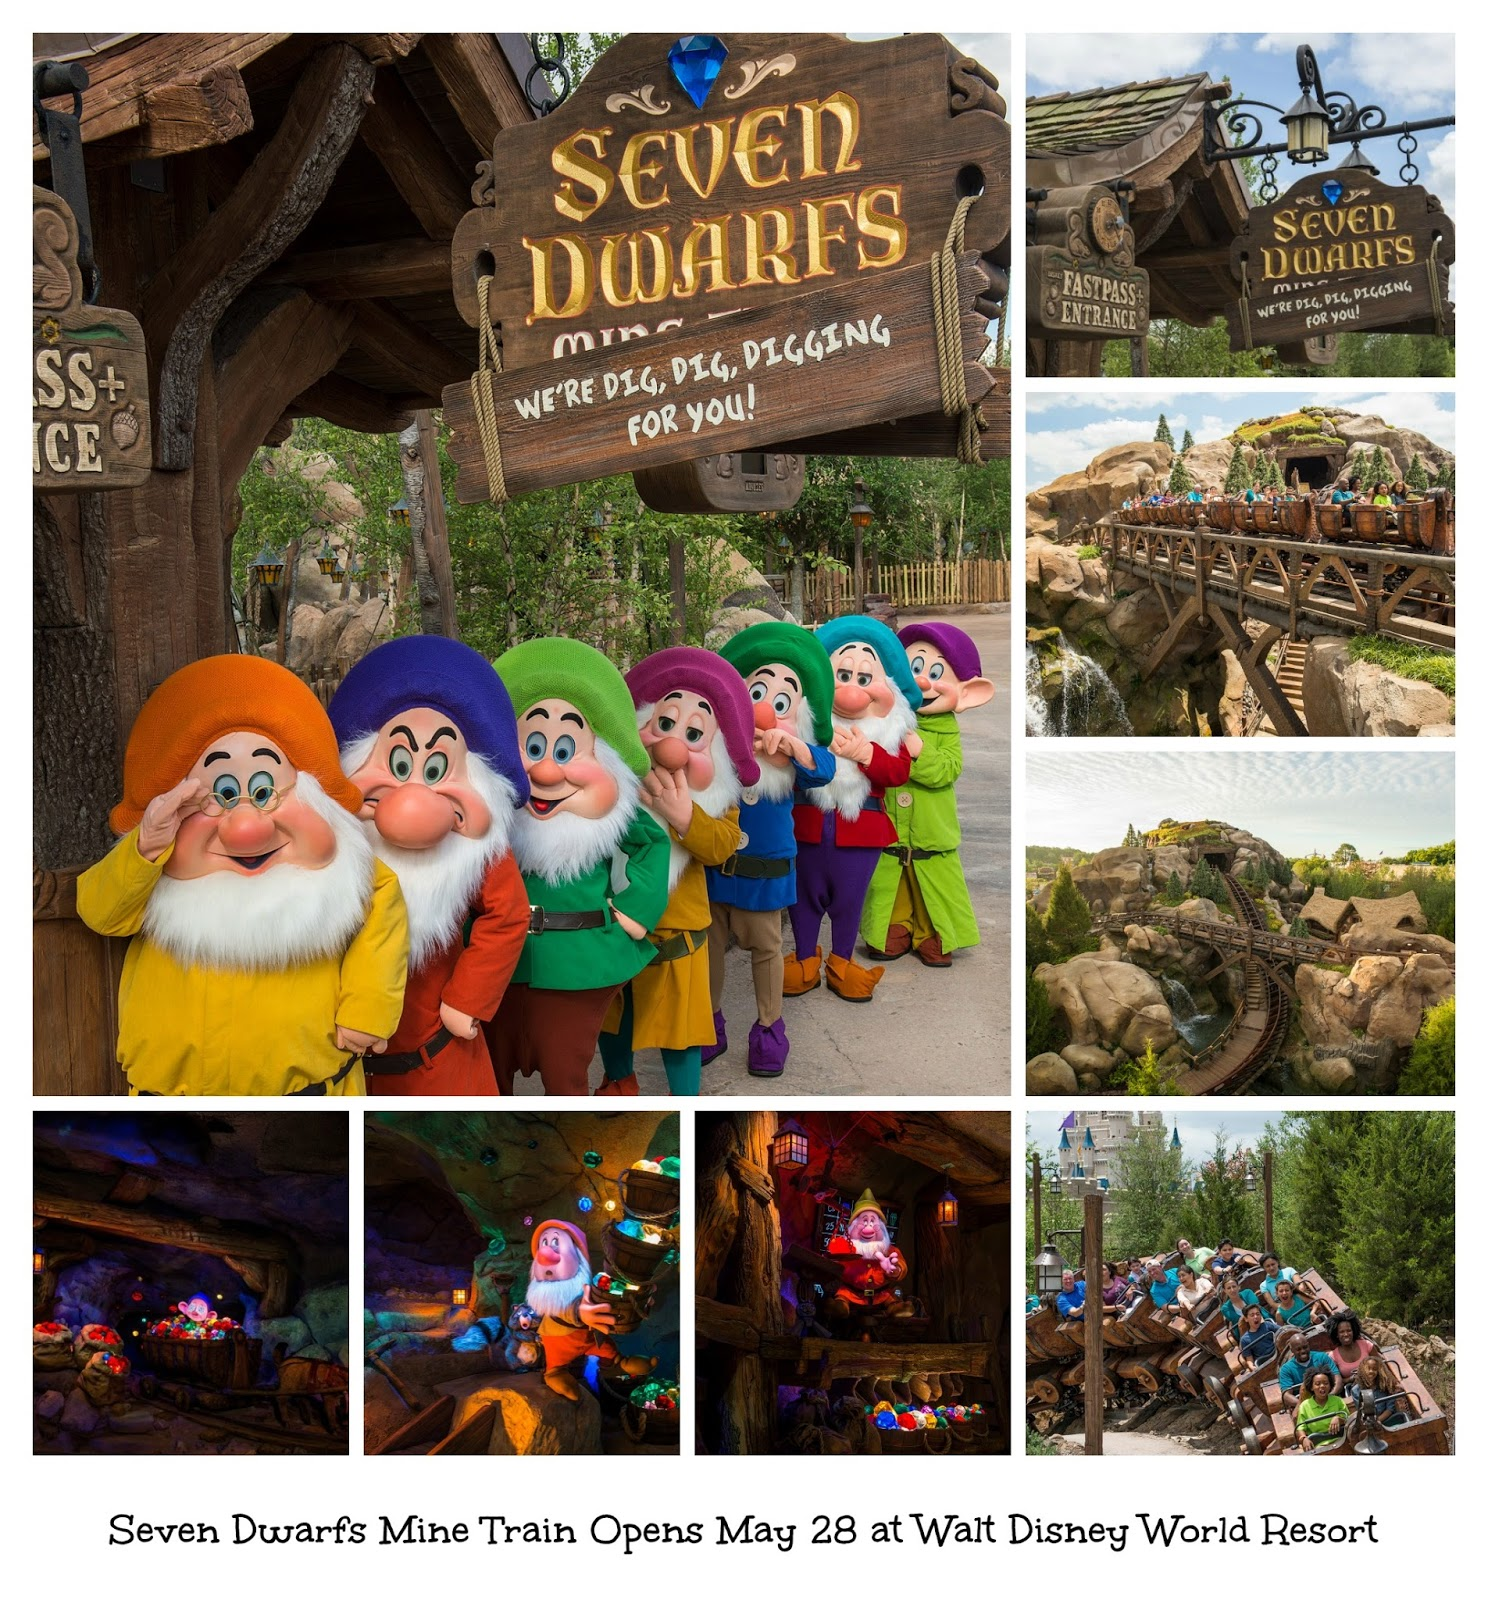 Seven Dwarfs Mine Train Opens May 28 at Walt Disney World Resort - Full Ride Through Video  #NewFantasyland